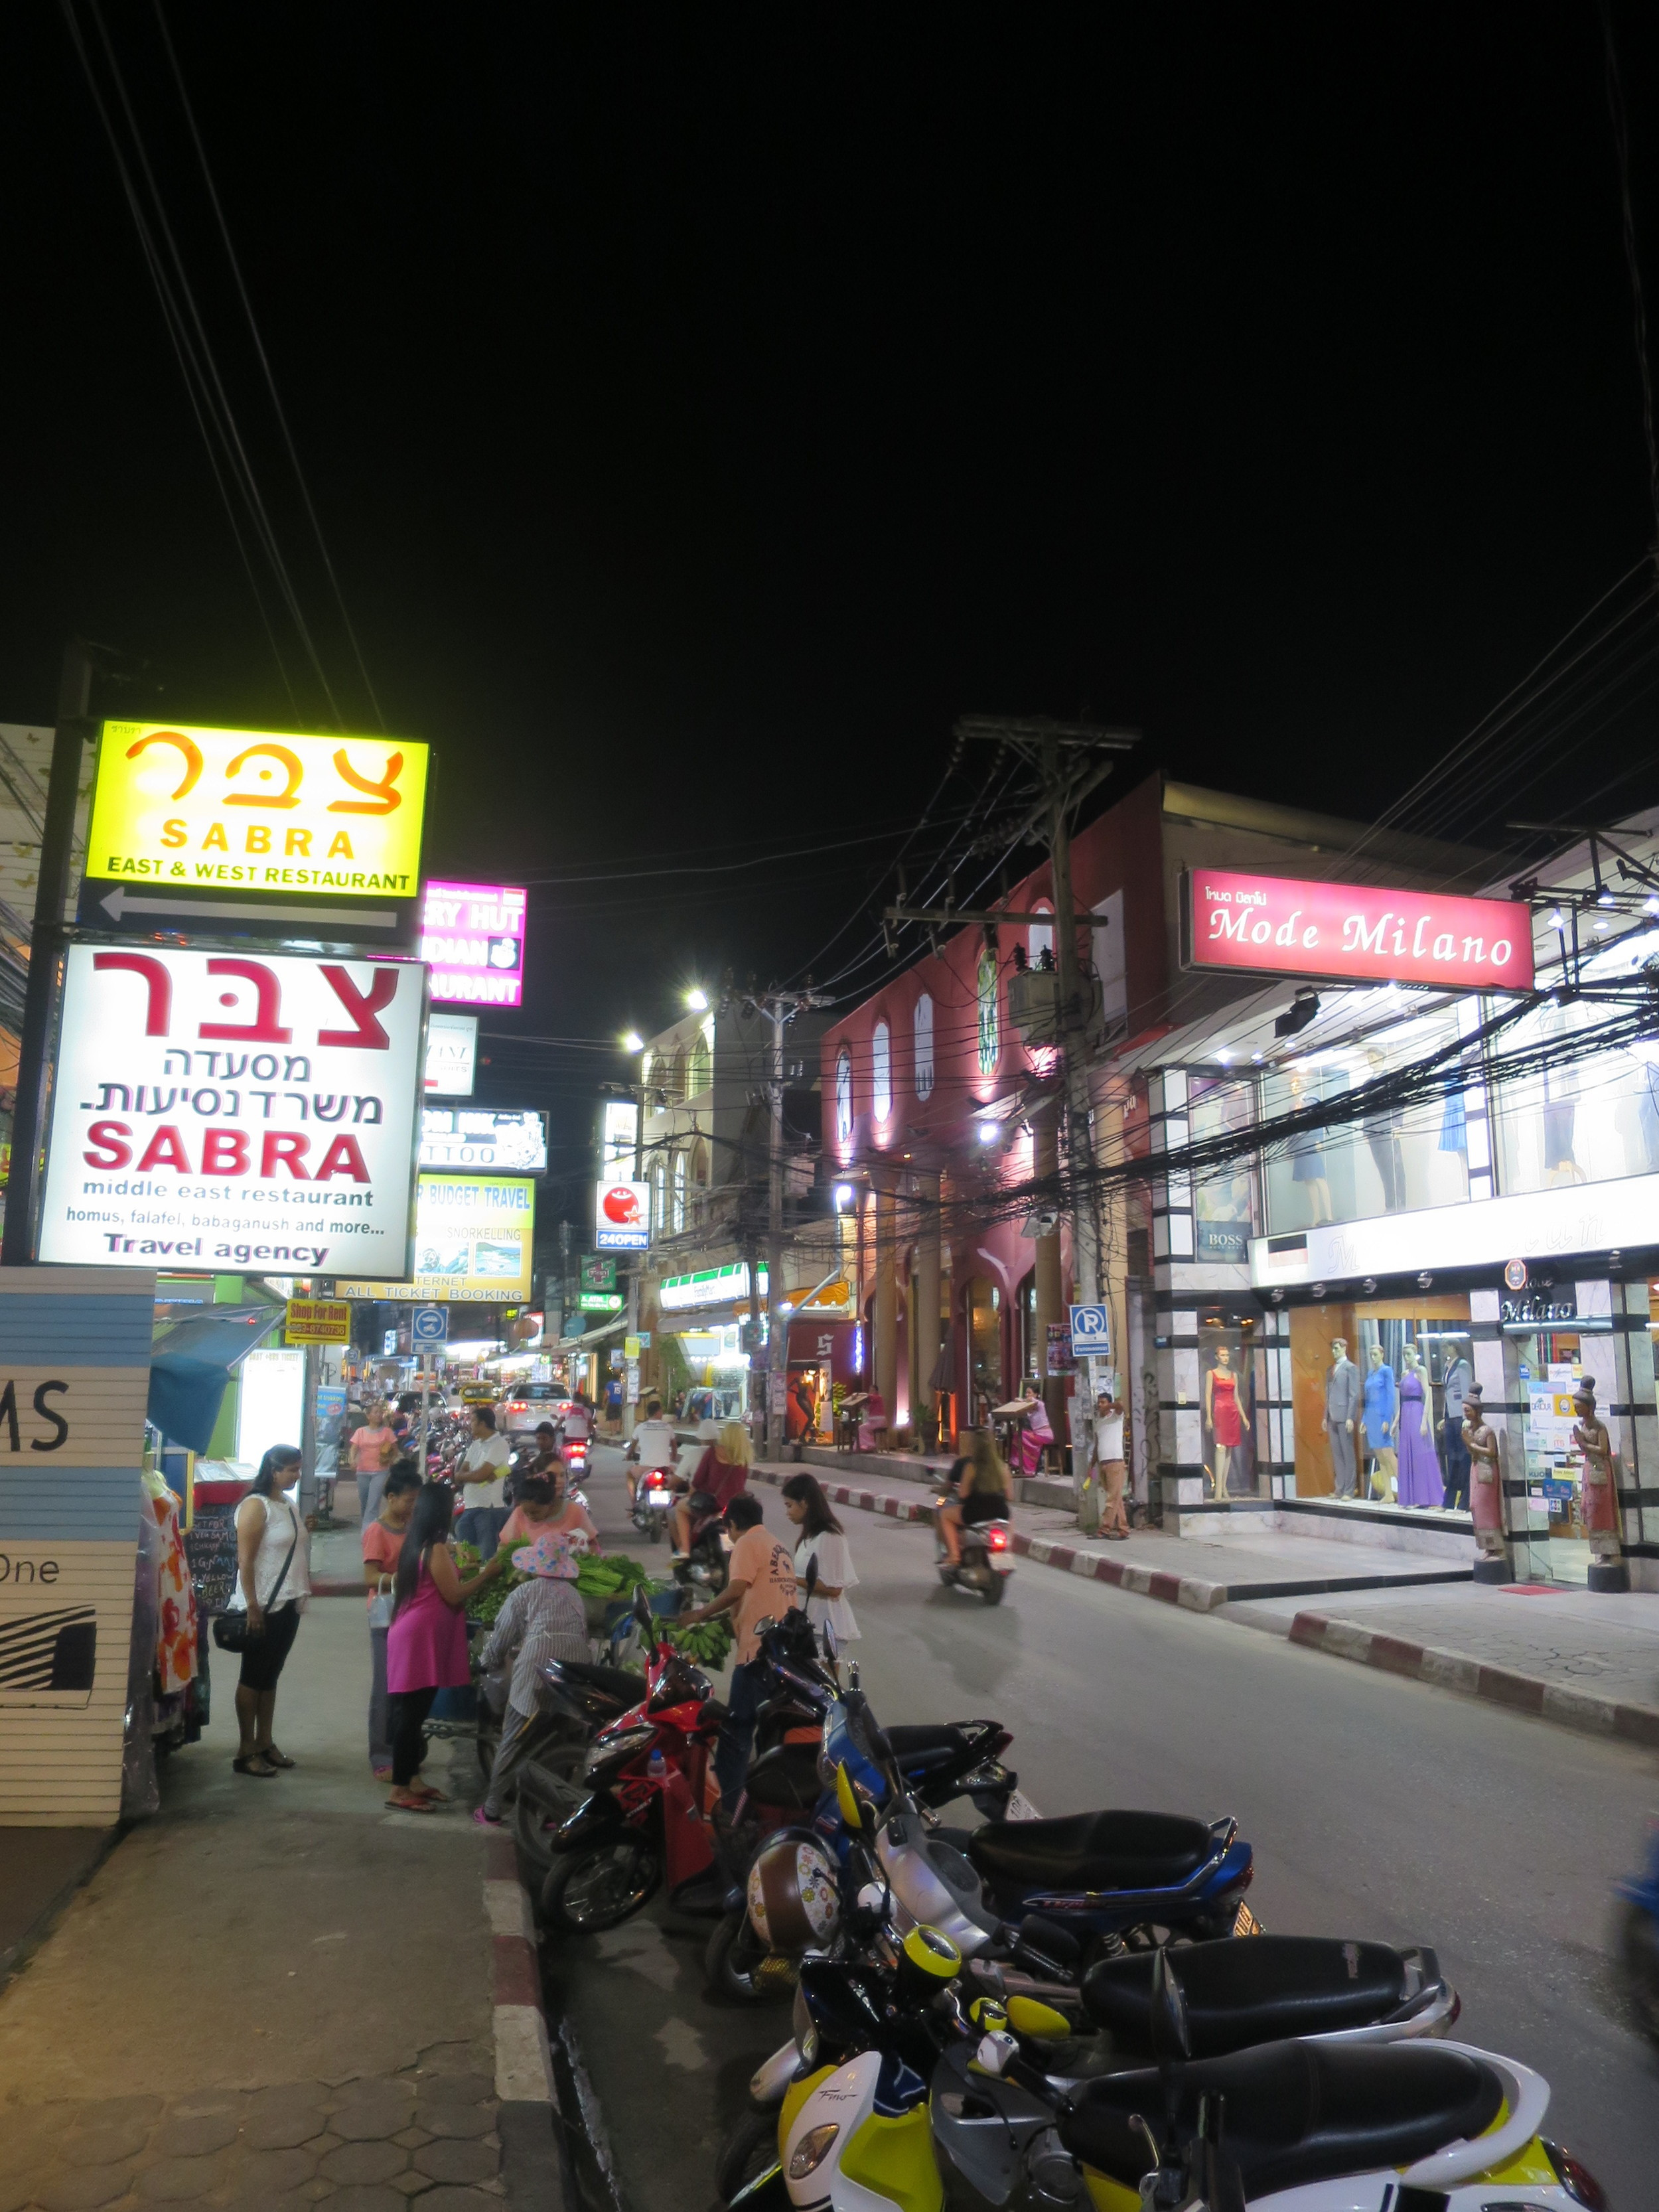 The main road in Chaweng